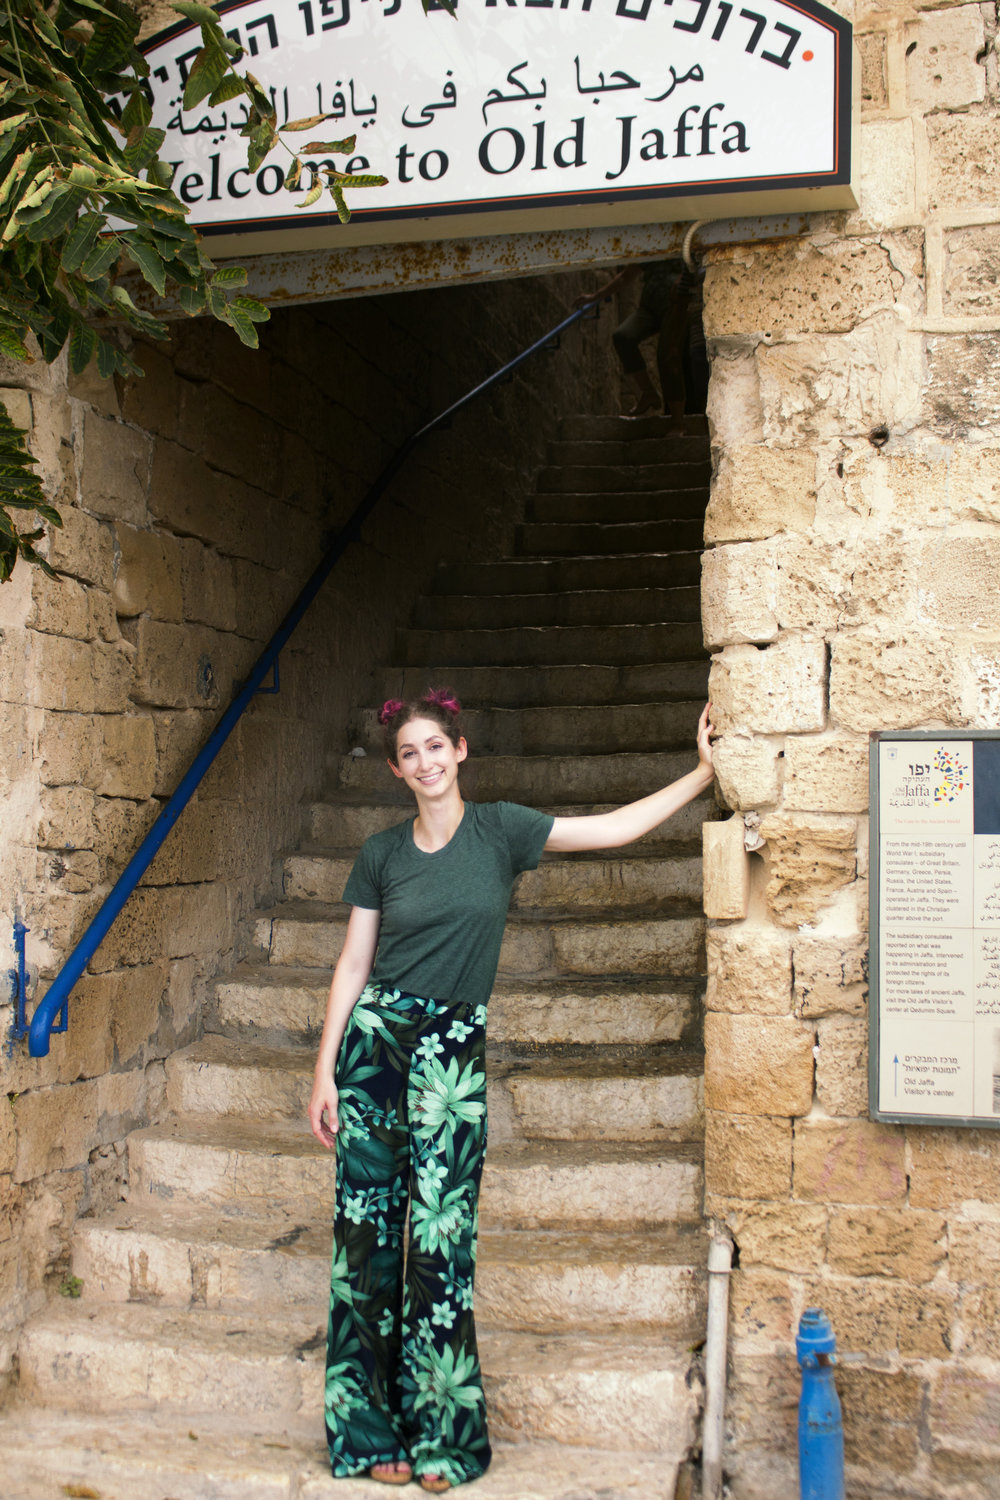 Geena Matuson (@geenamatuson) at the entrance to Old Jaffa in Tel Aviv, Israel, 2017.